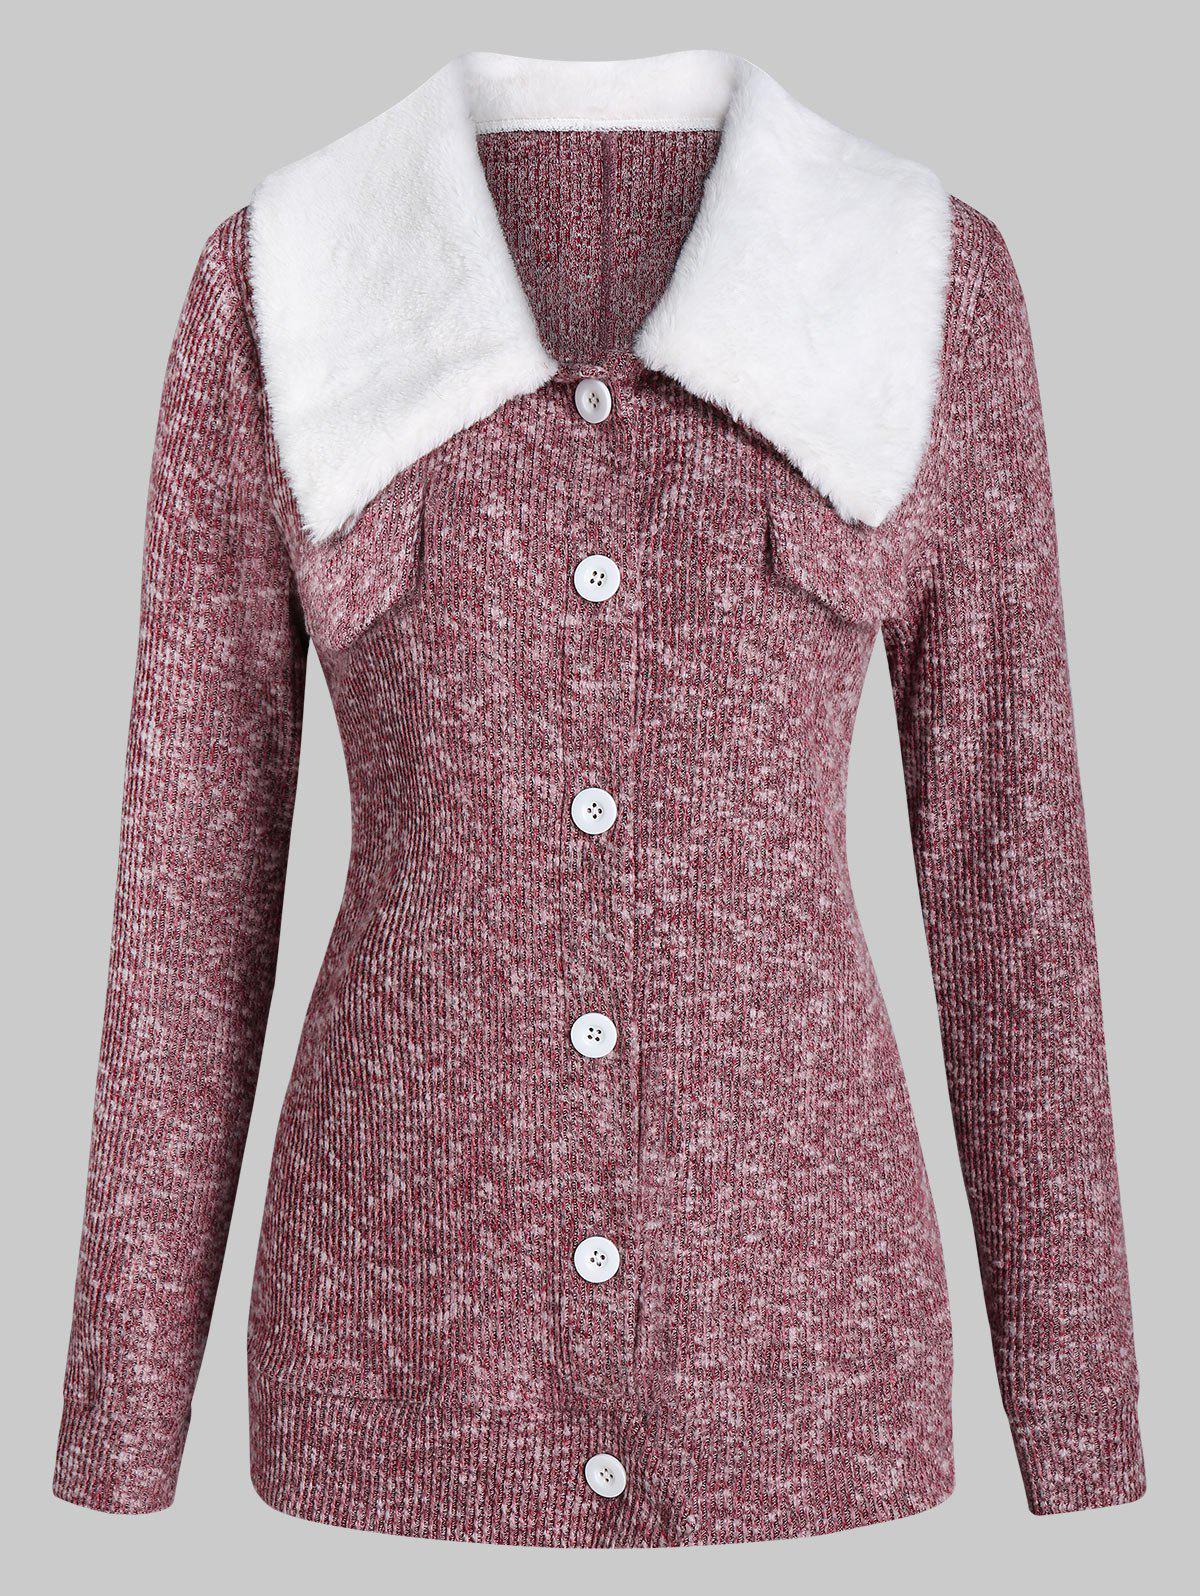 Heathered Faux Fur Collar Button Cardigan - RED WINE 3XL